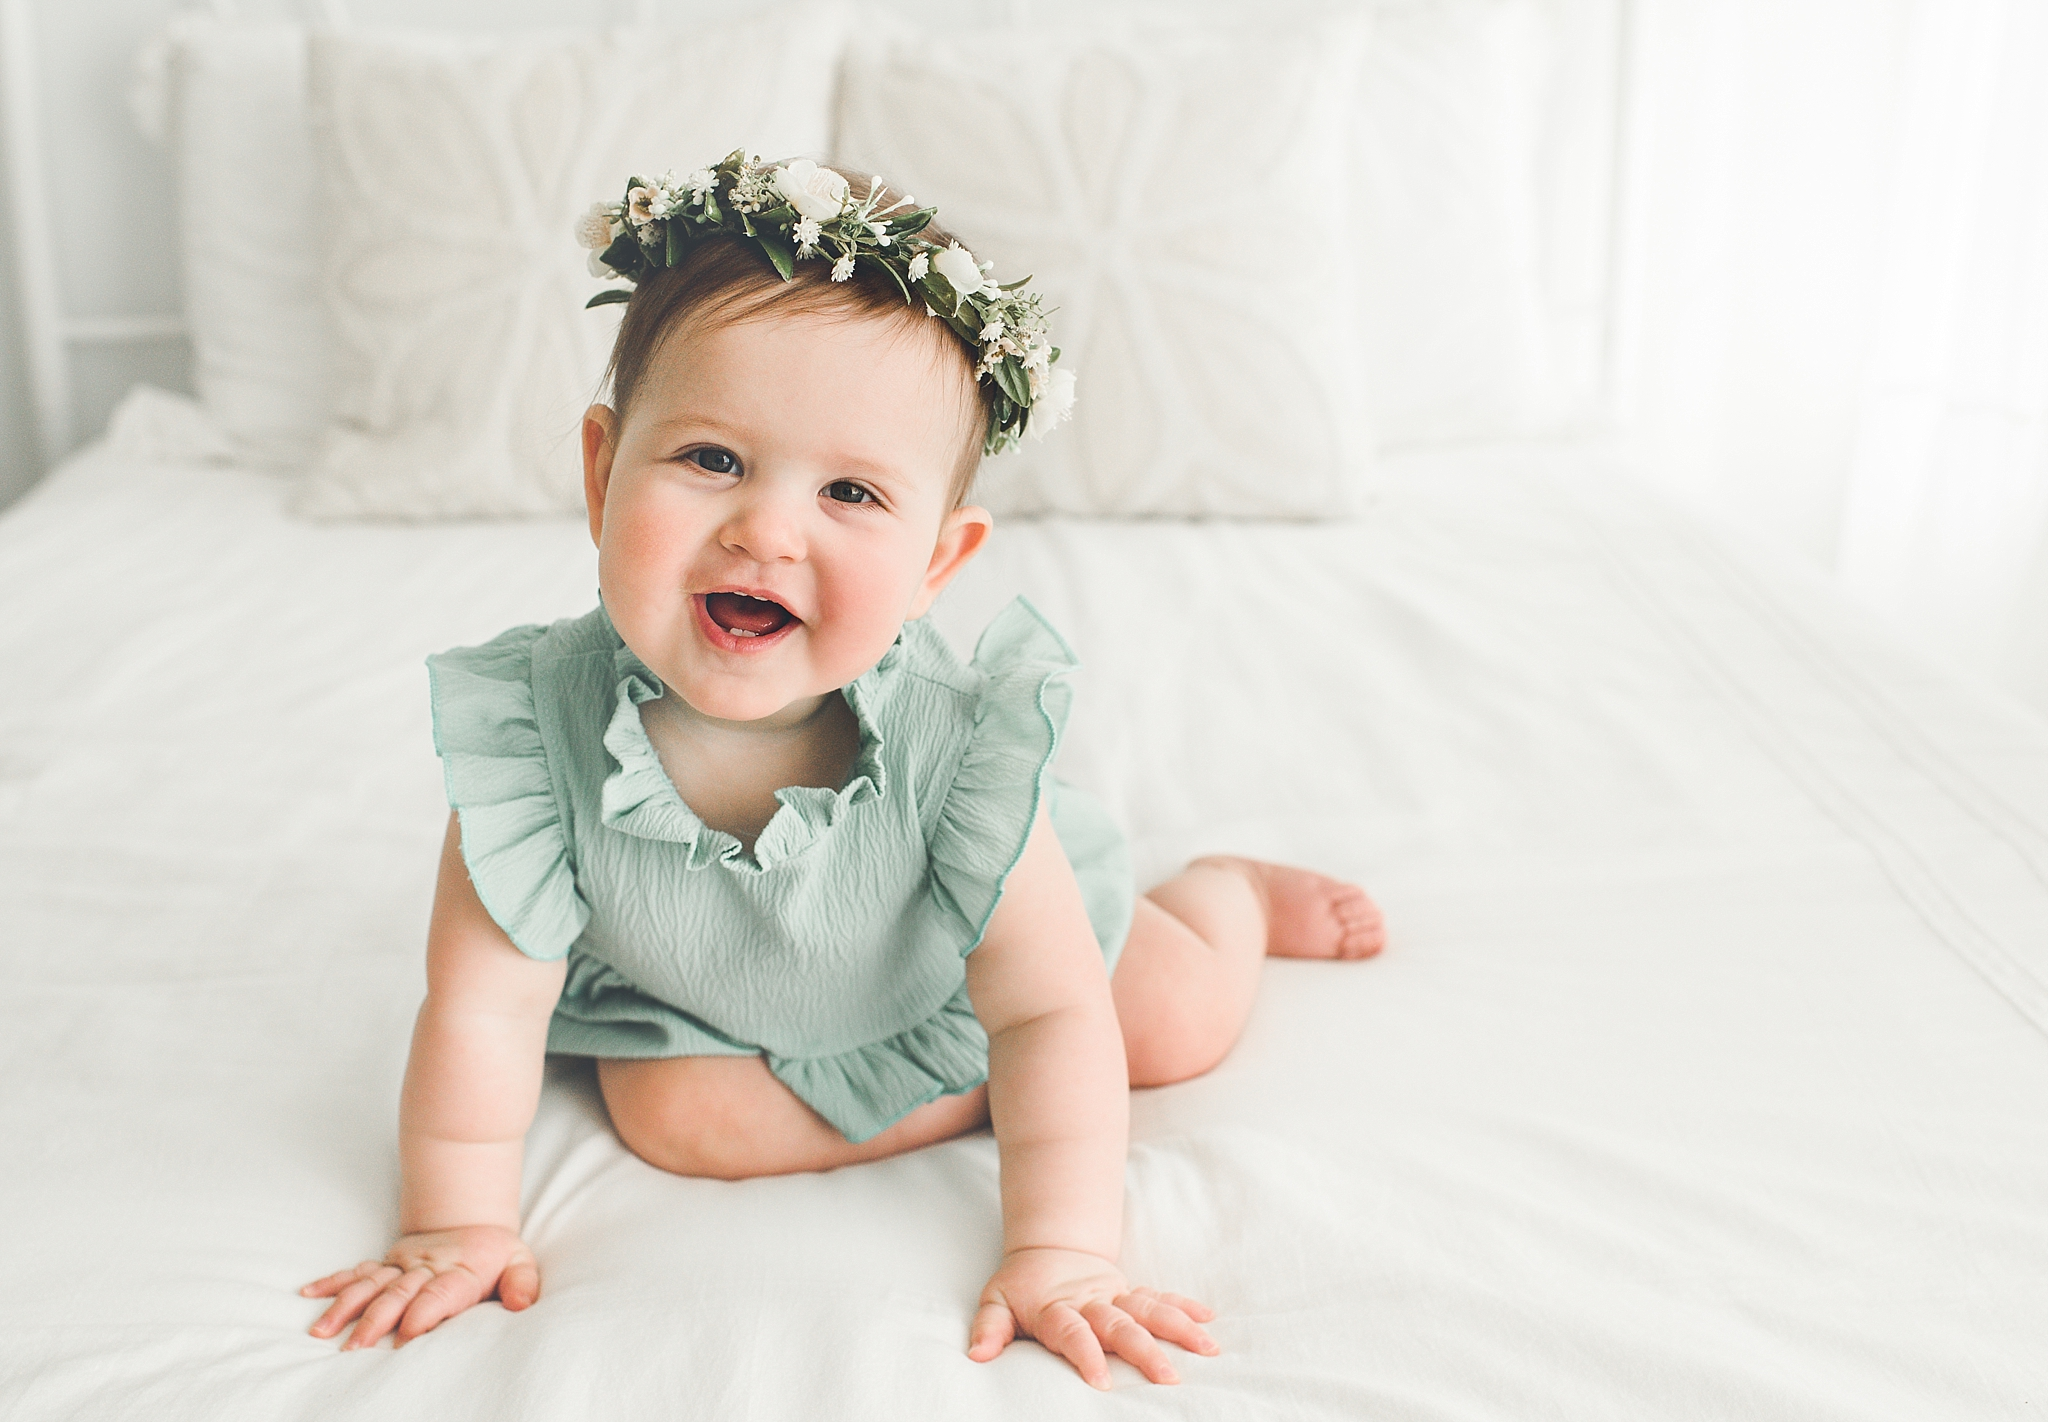 Centerville Ohio Baby Photographer | Adeline is Sitting